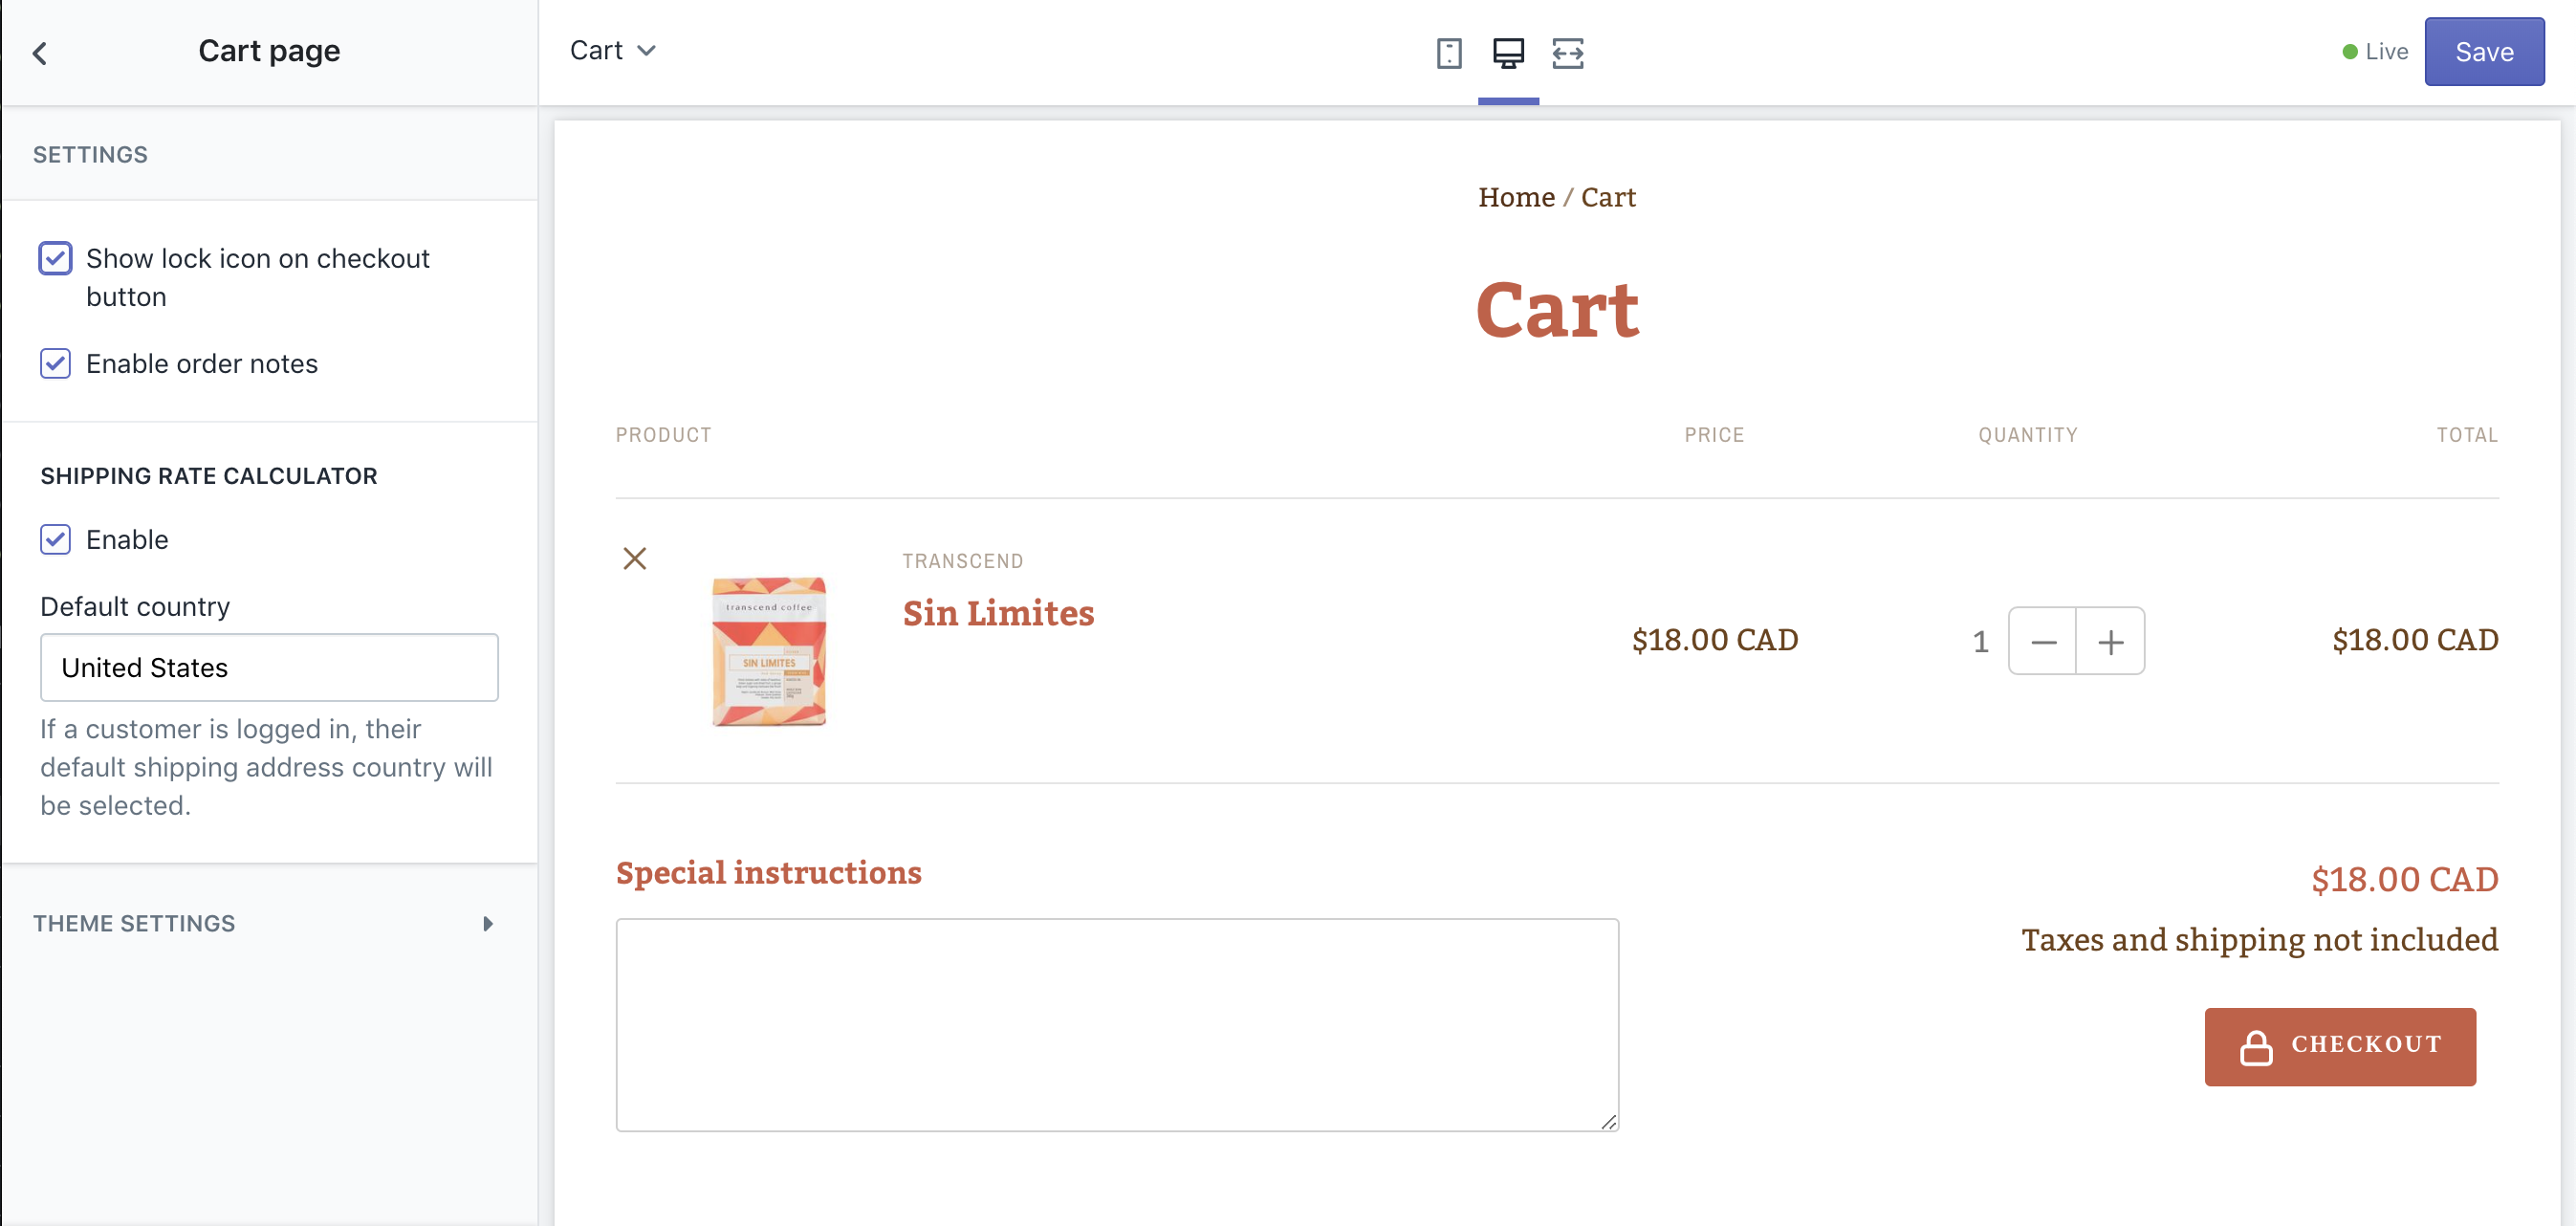 Cart page being edited in the theme editor